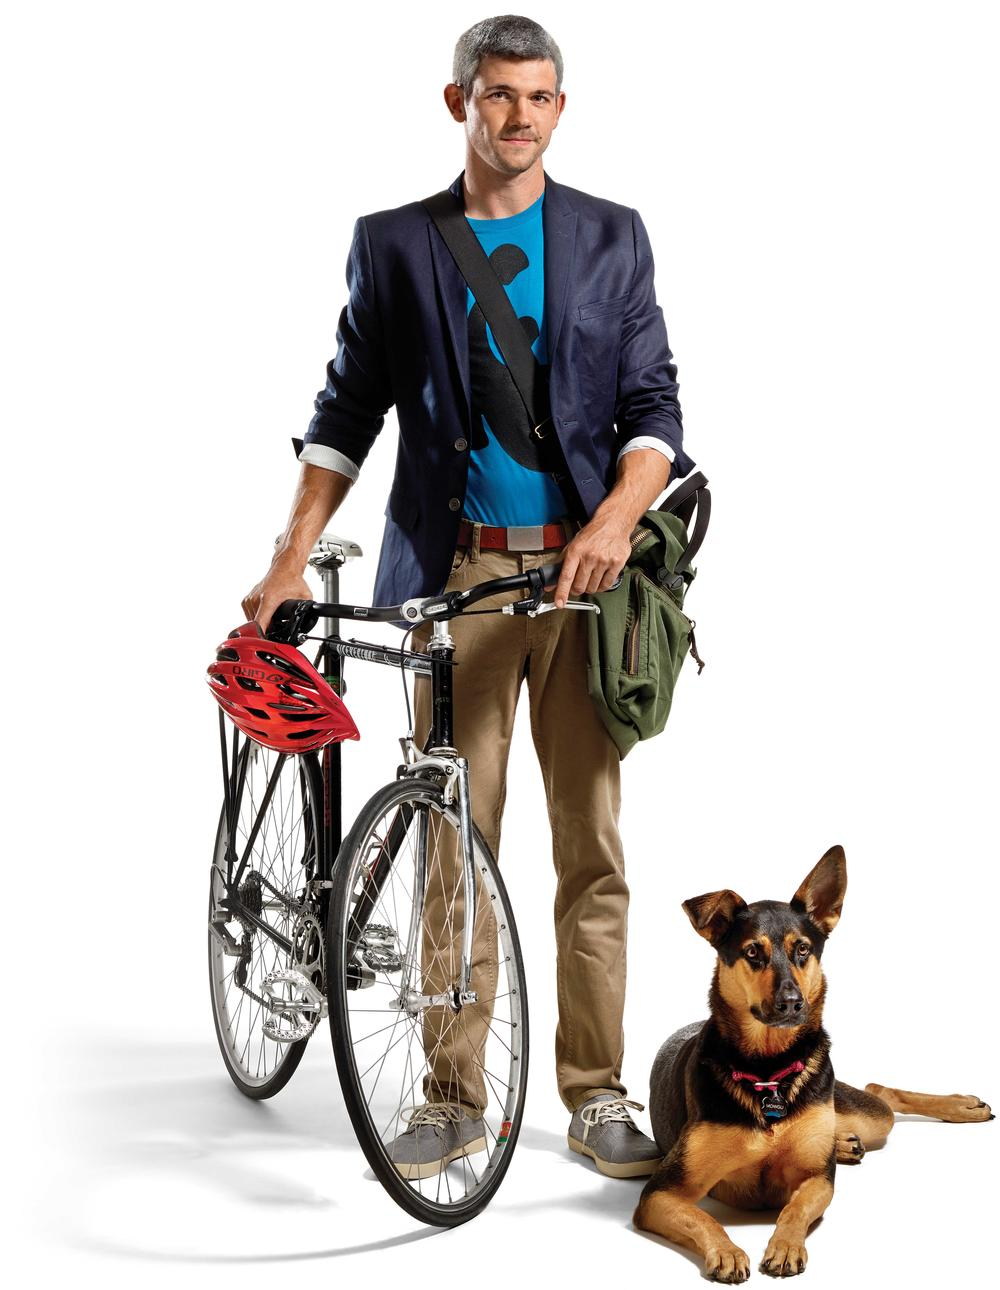 Man with bicycle and dog